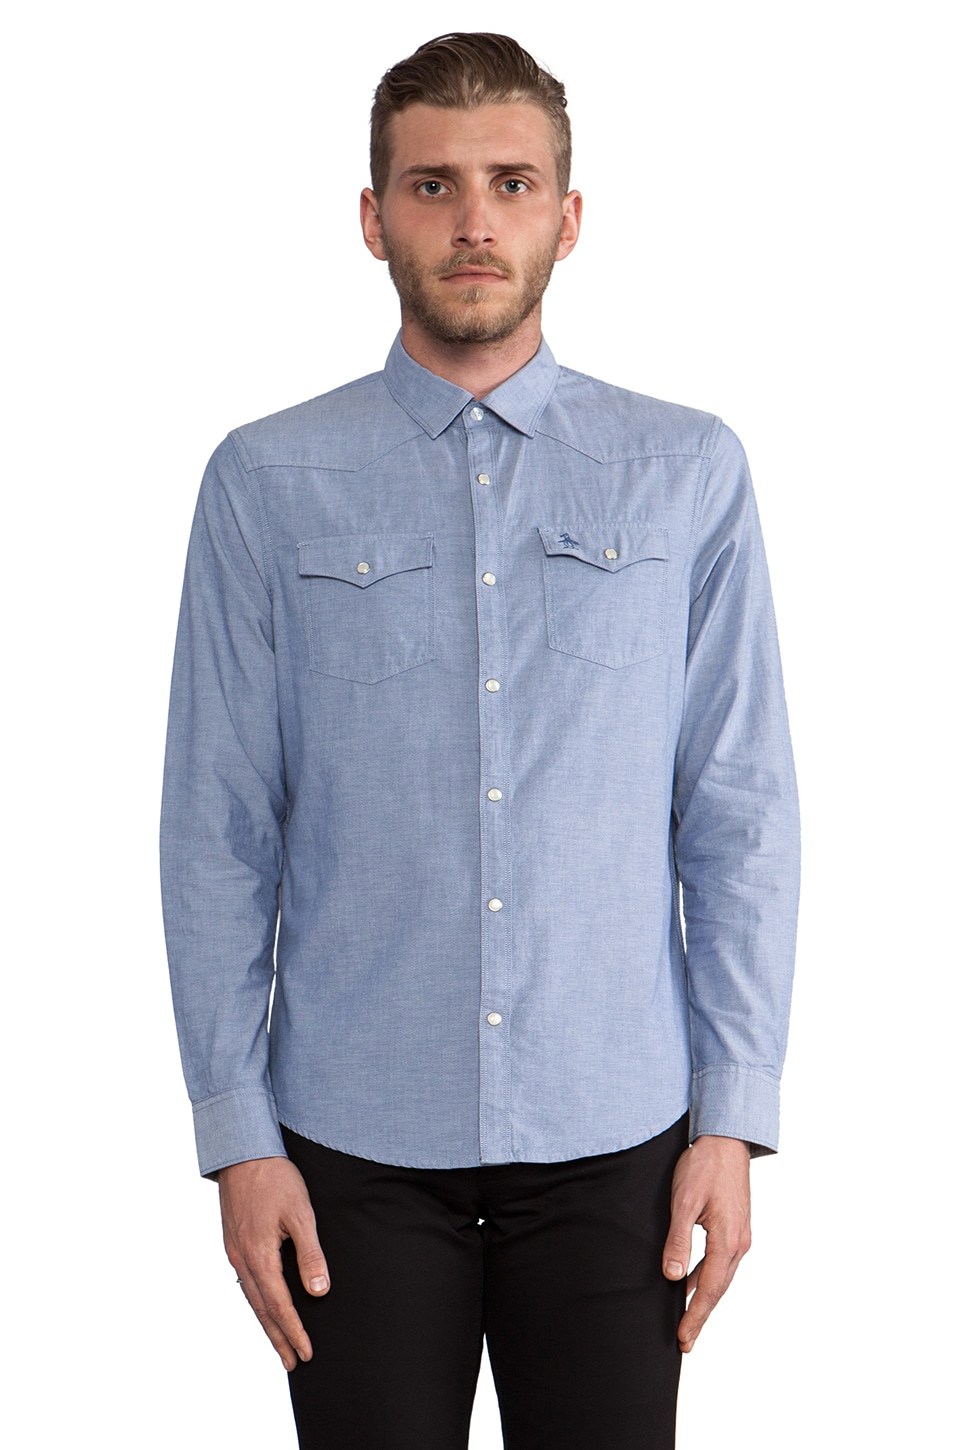 Penguin Chambray Button Down in Coastal